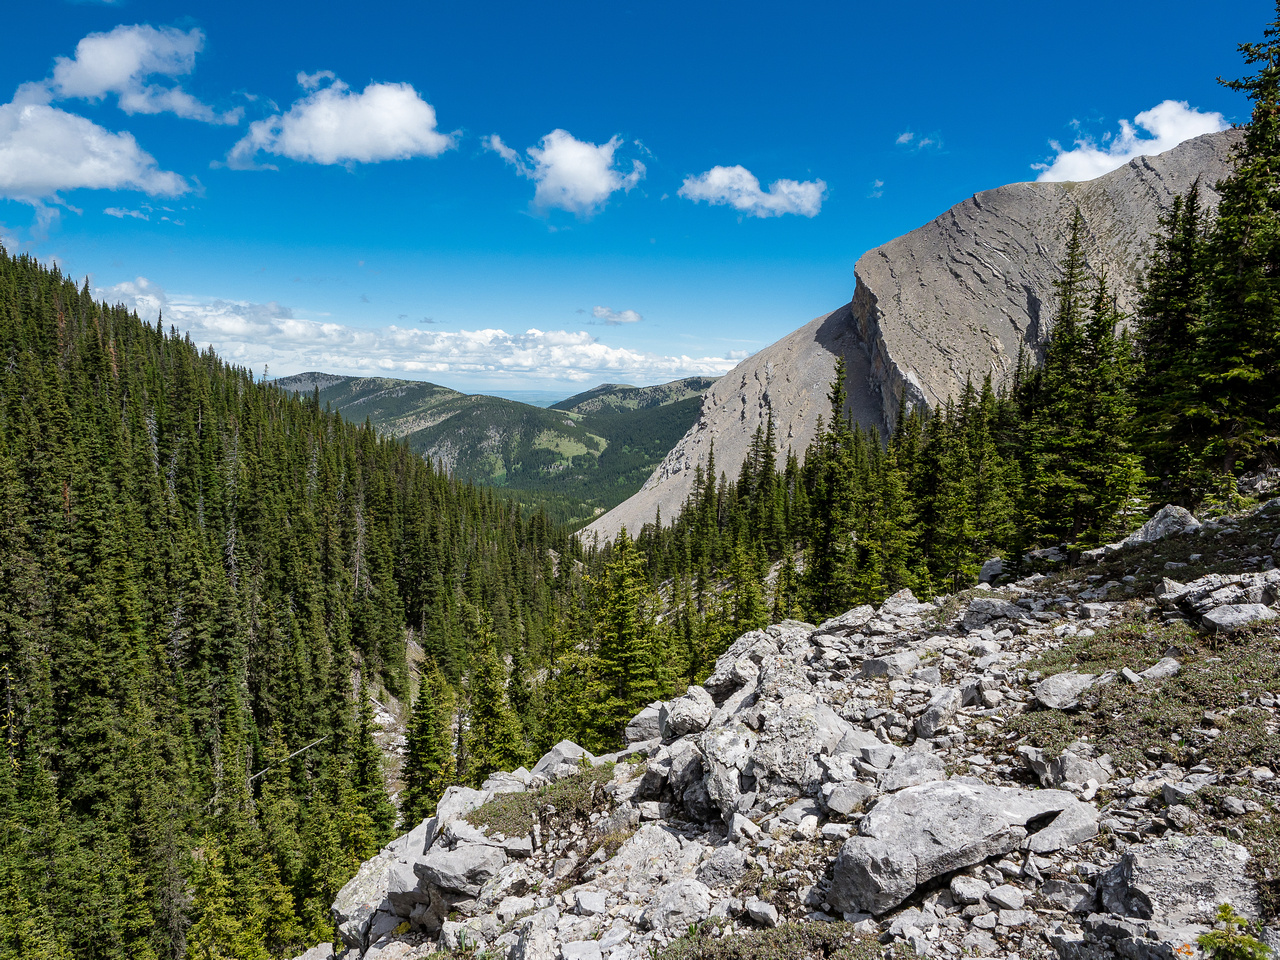 Looking towards our exit and Grass Pass from the busy ridge between drainages.